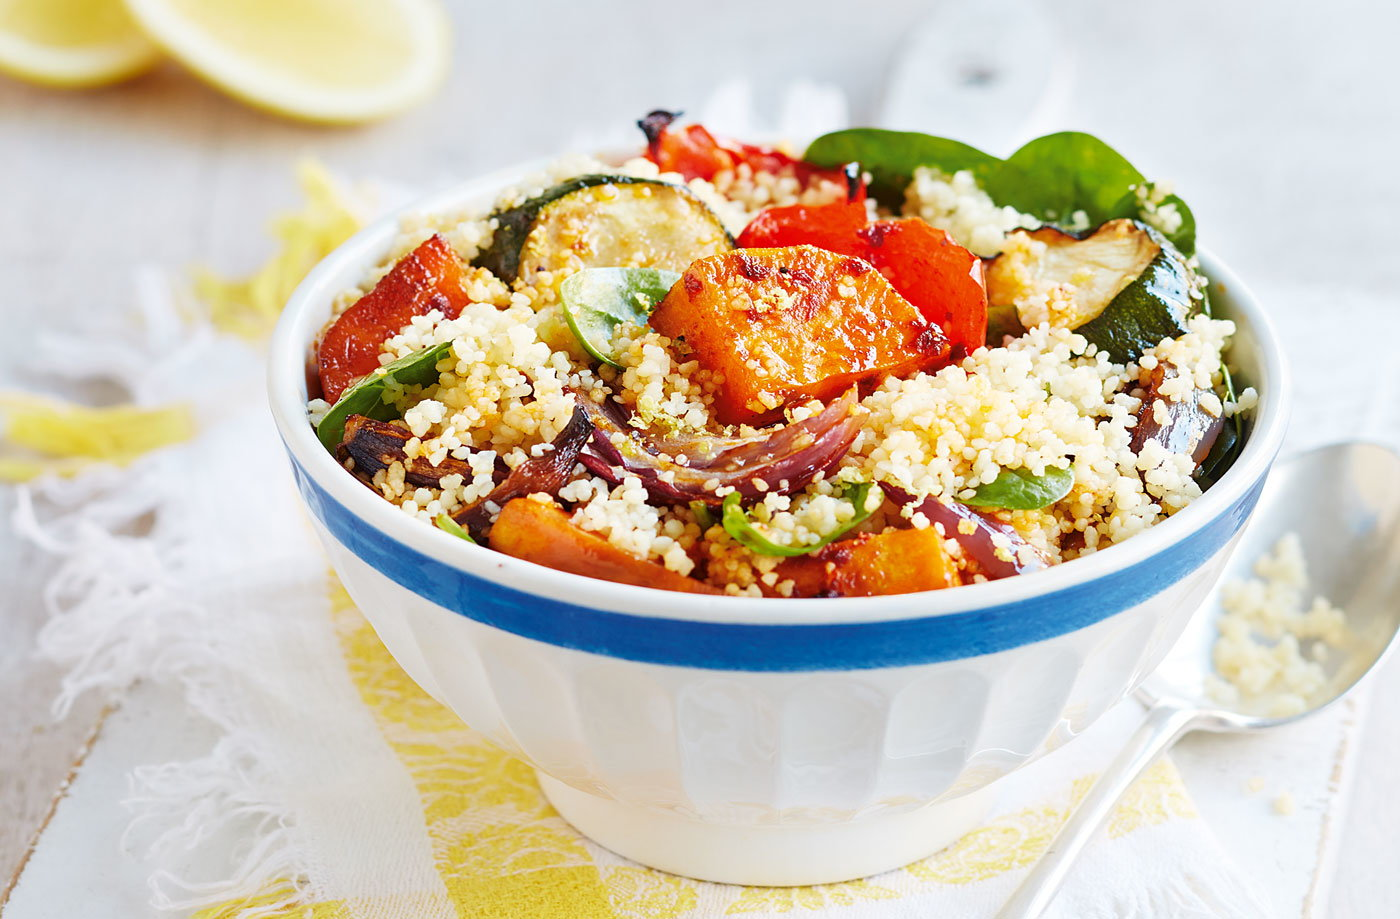 Harissa-spiced vegetable couscous | Tesco Real Food